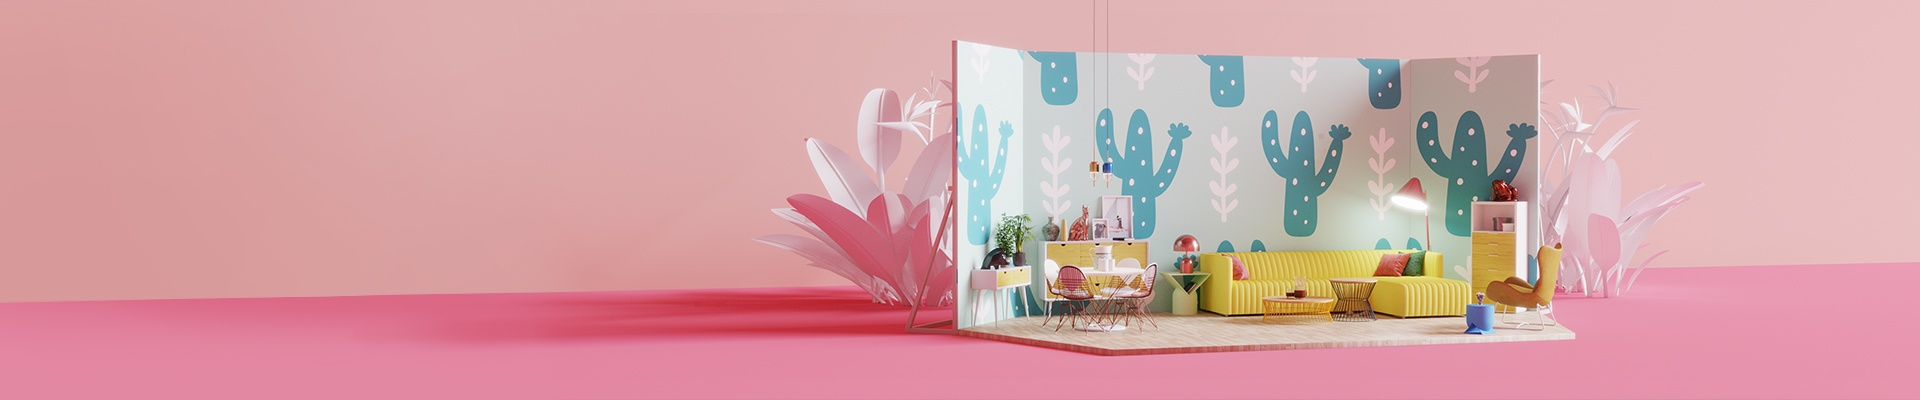 Wall Mural - Cacti and branches